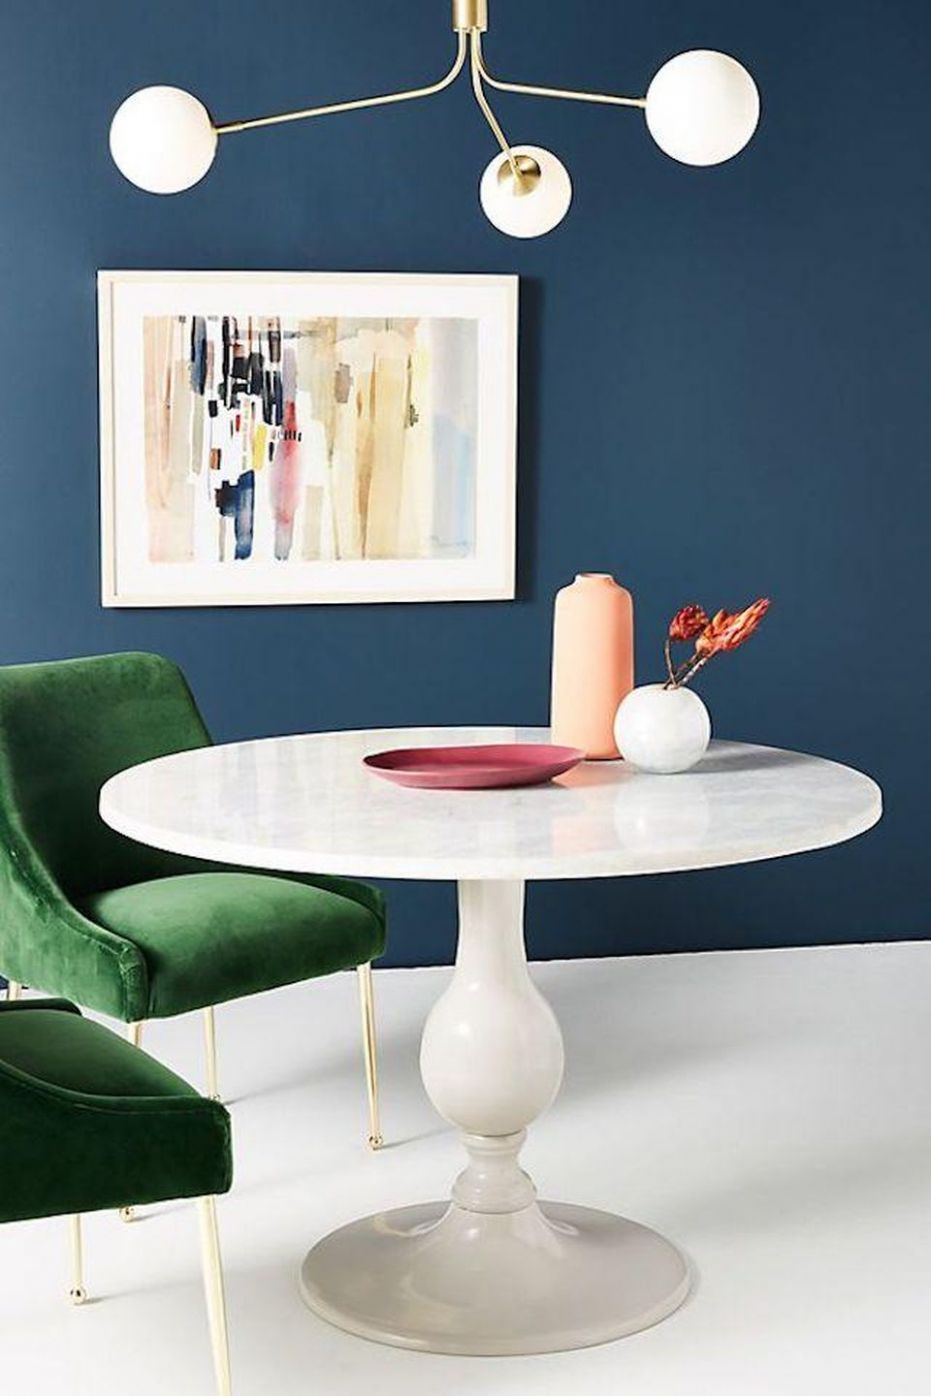 12 Round Dining Room Tables Perfect For Small Spaces - dining room ideas with round table